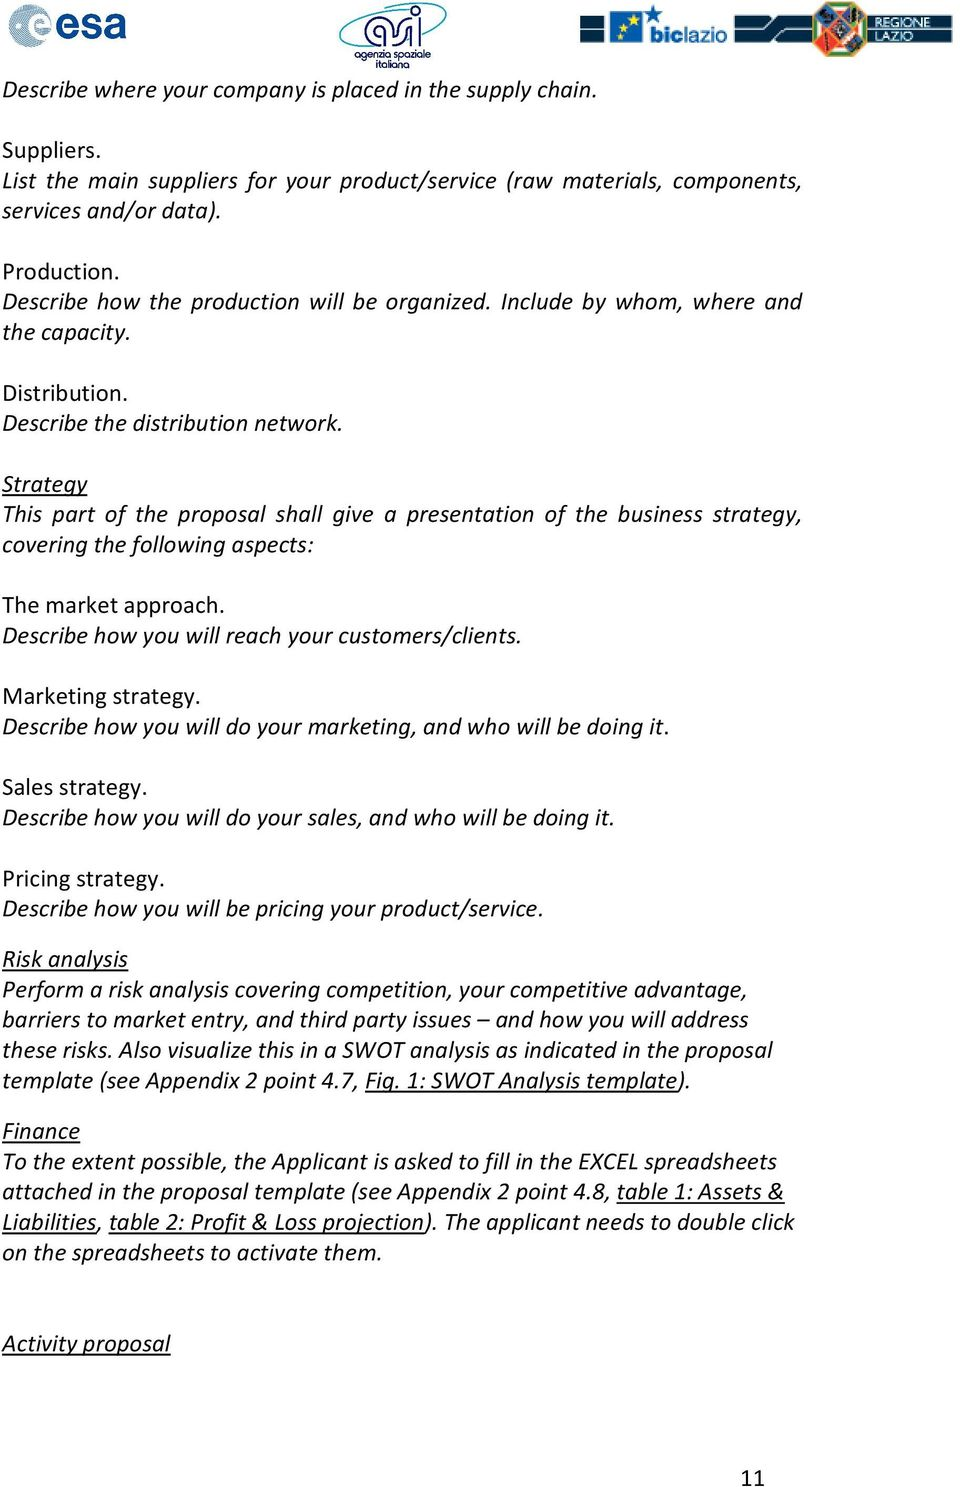 Strategy This part of the proposal shall give a presentation of the business strategy, covering the following aspects: The market approach. Describe how you will reach your customers/clients.